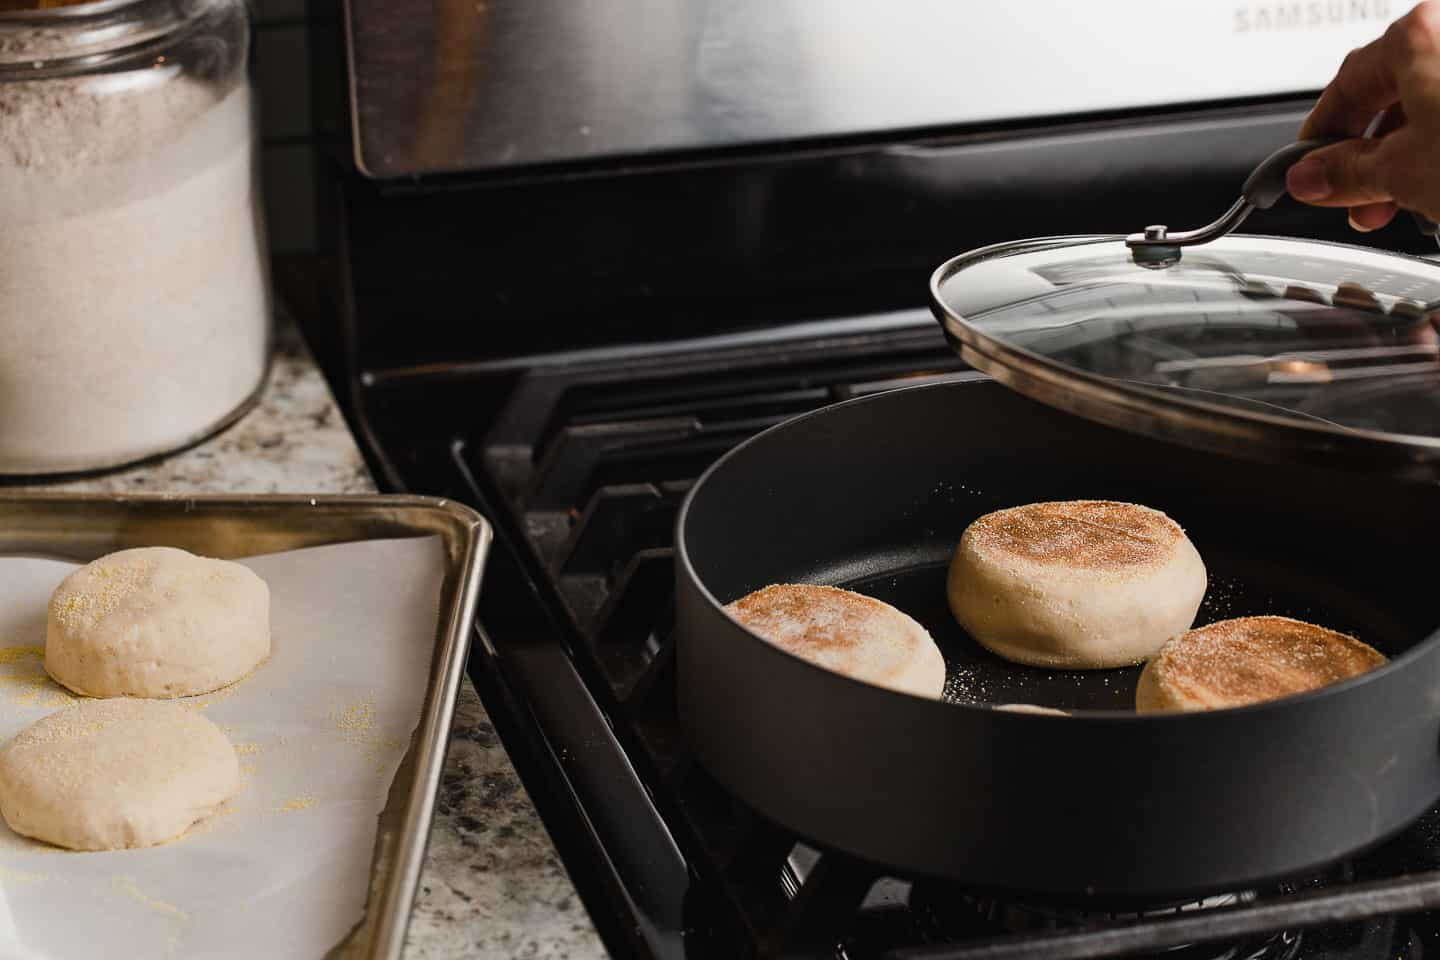 Sourdough english muffins cooking in a skillet.